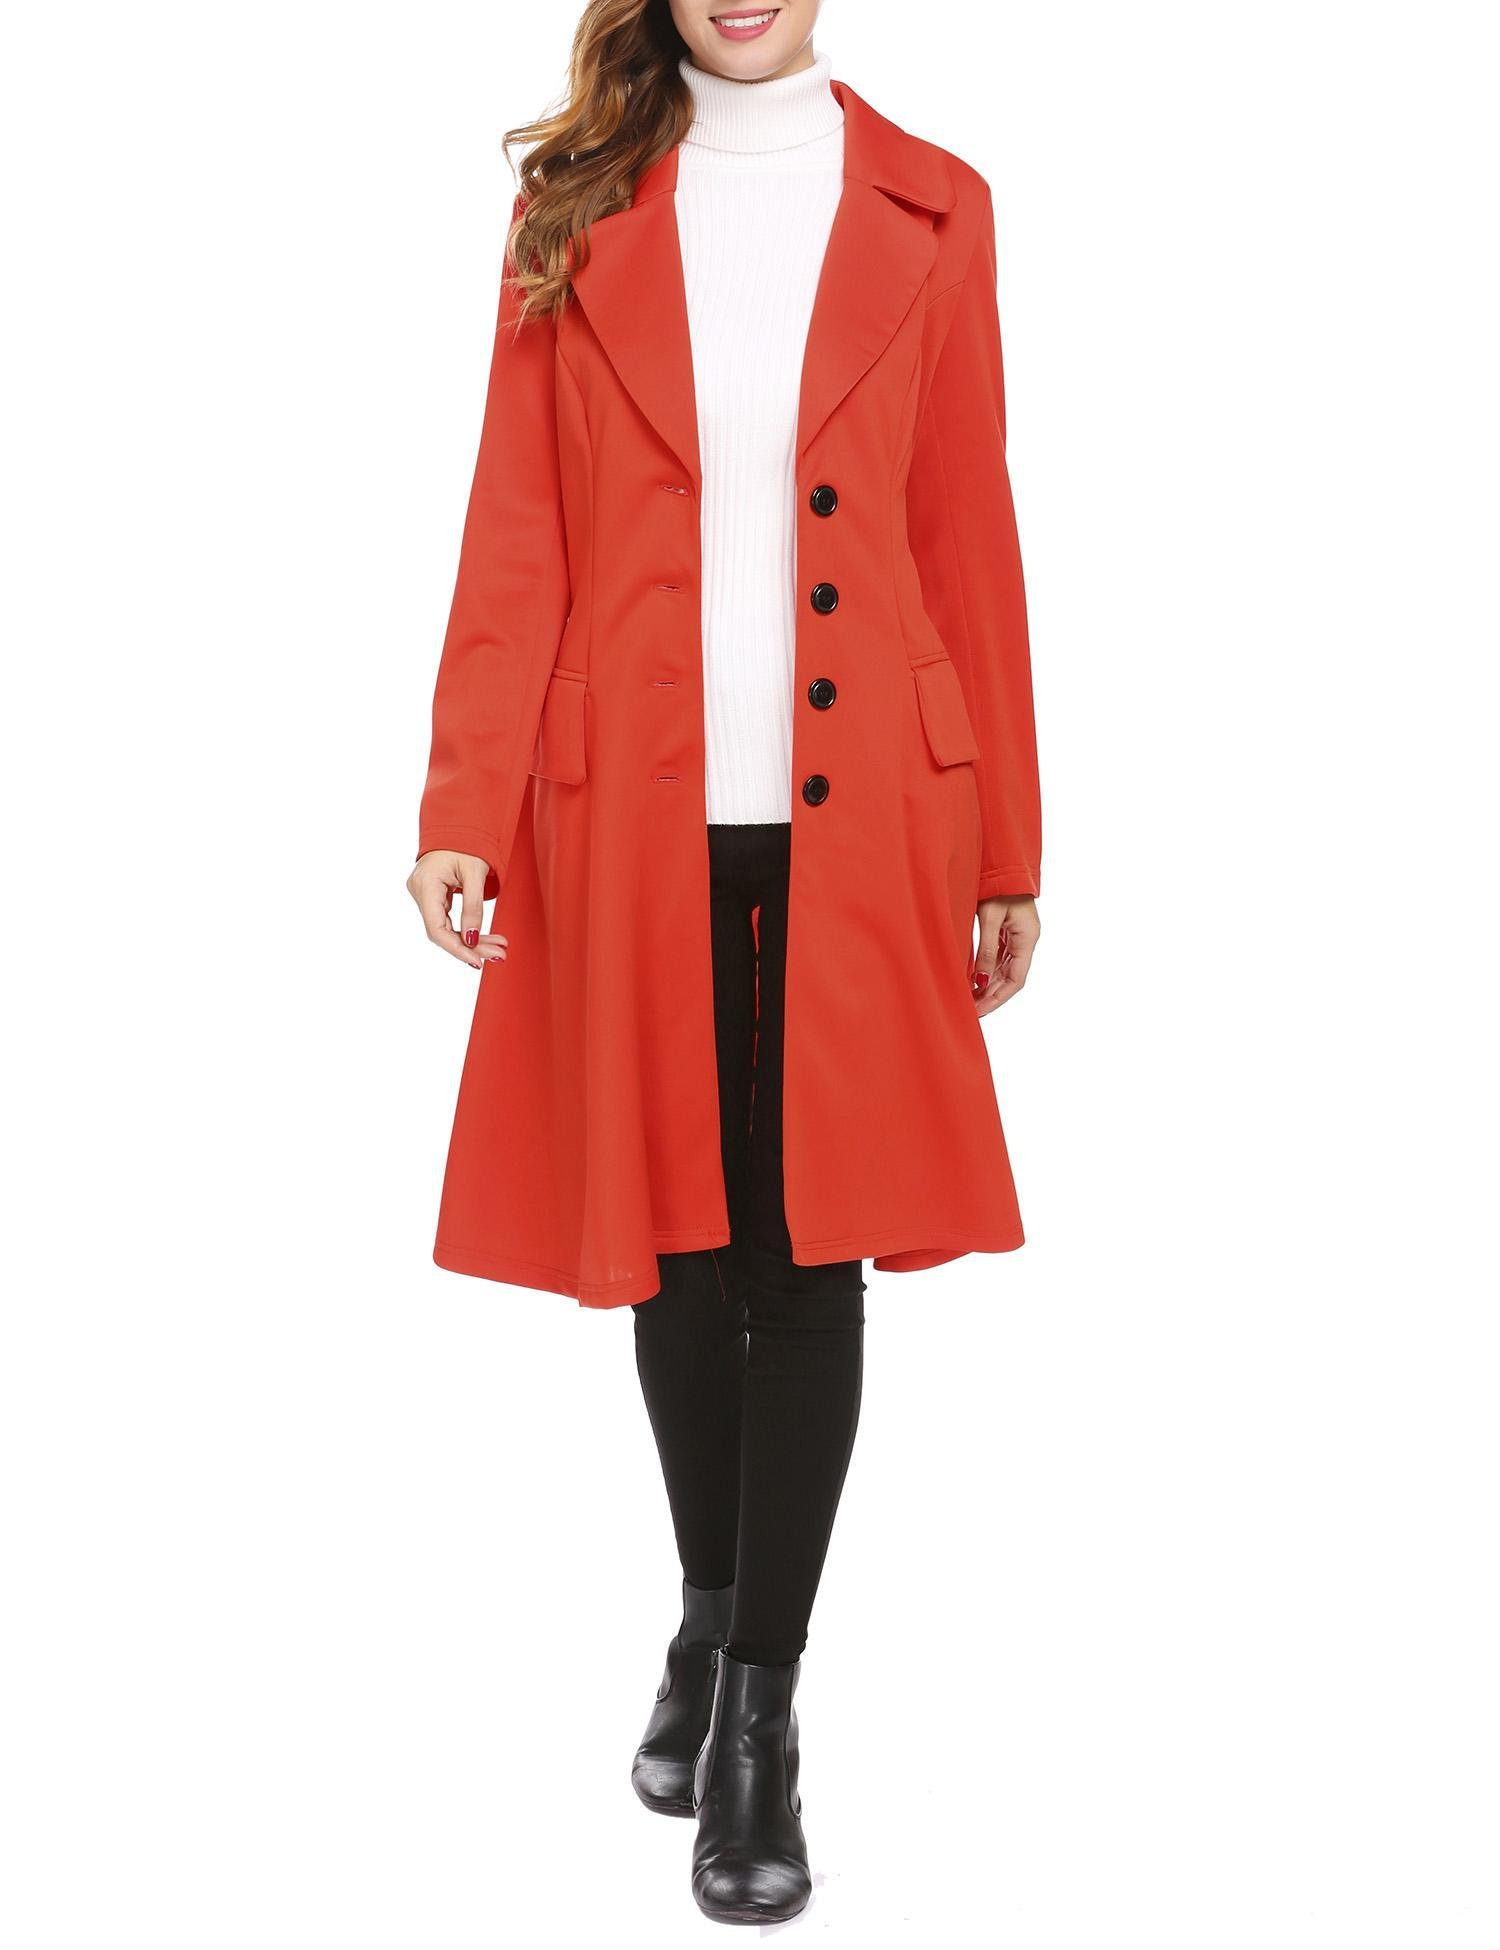 SE MIU Long Trench Coat Women Turn Down Neck Single Breasted Pea Coat Overcoat With Pocket, Red, Small